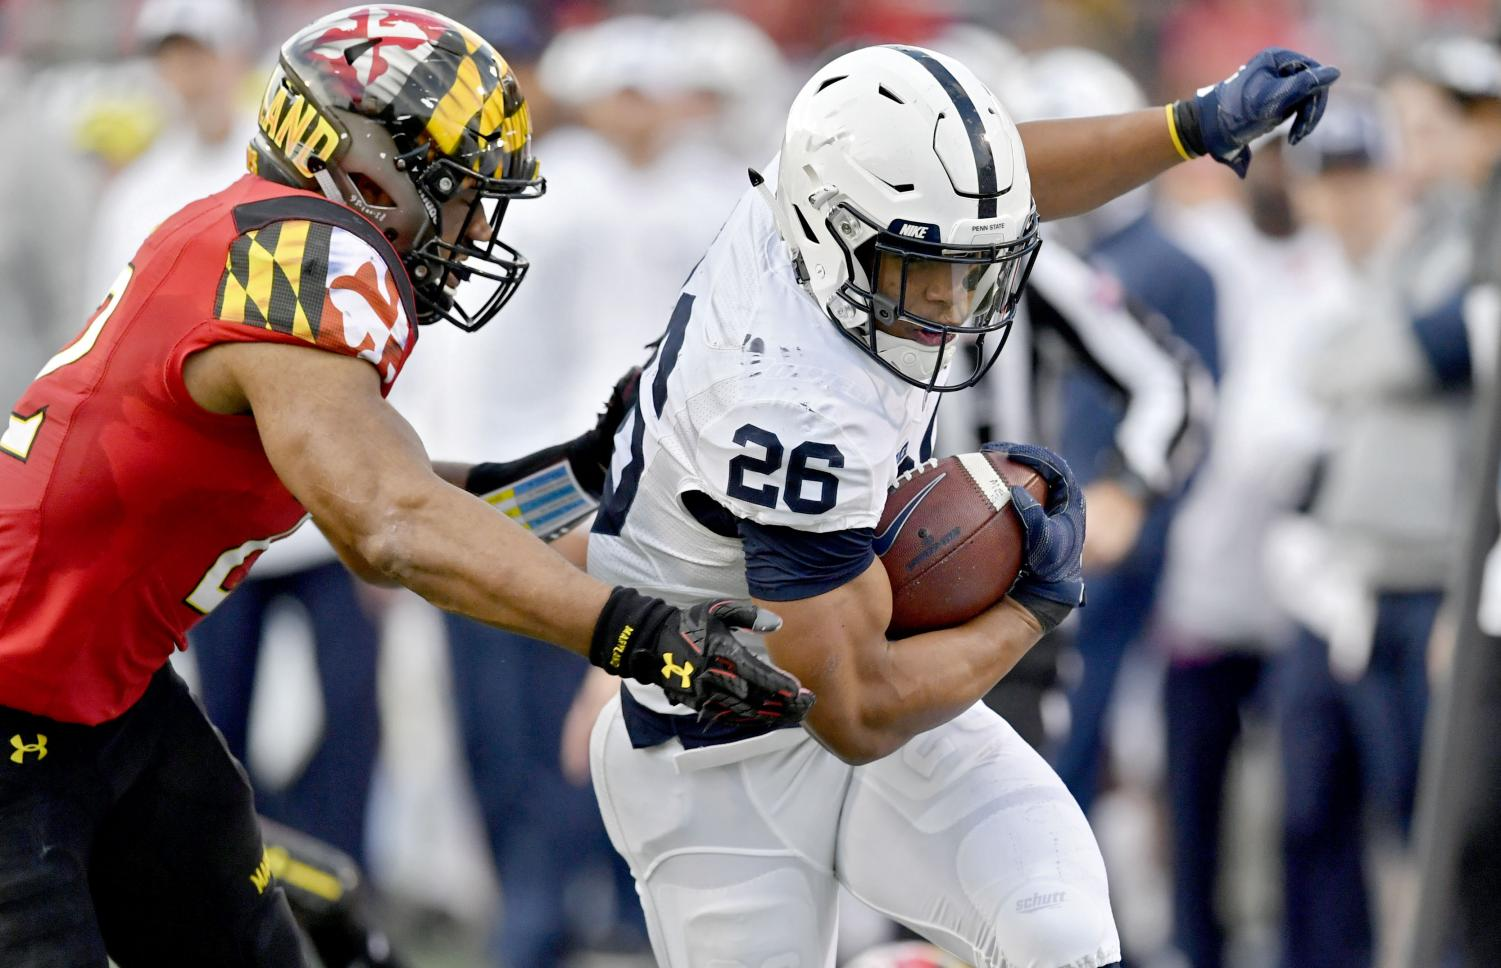 Penn State running back Saquon Barkley (26) jets past a Maryland defender.